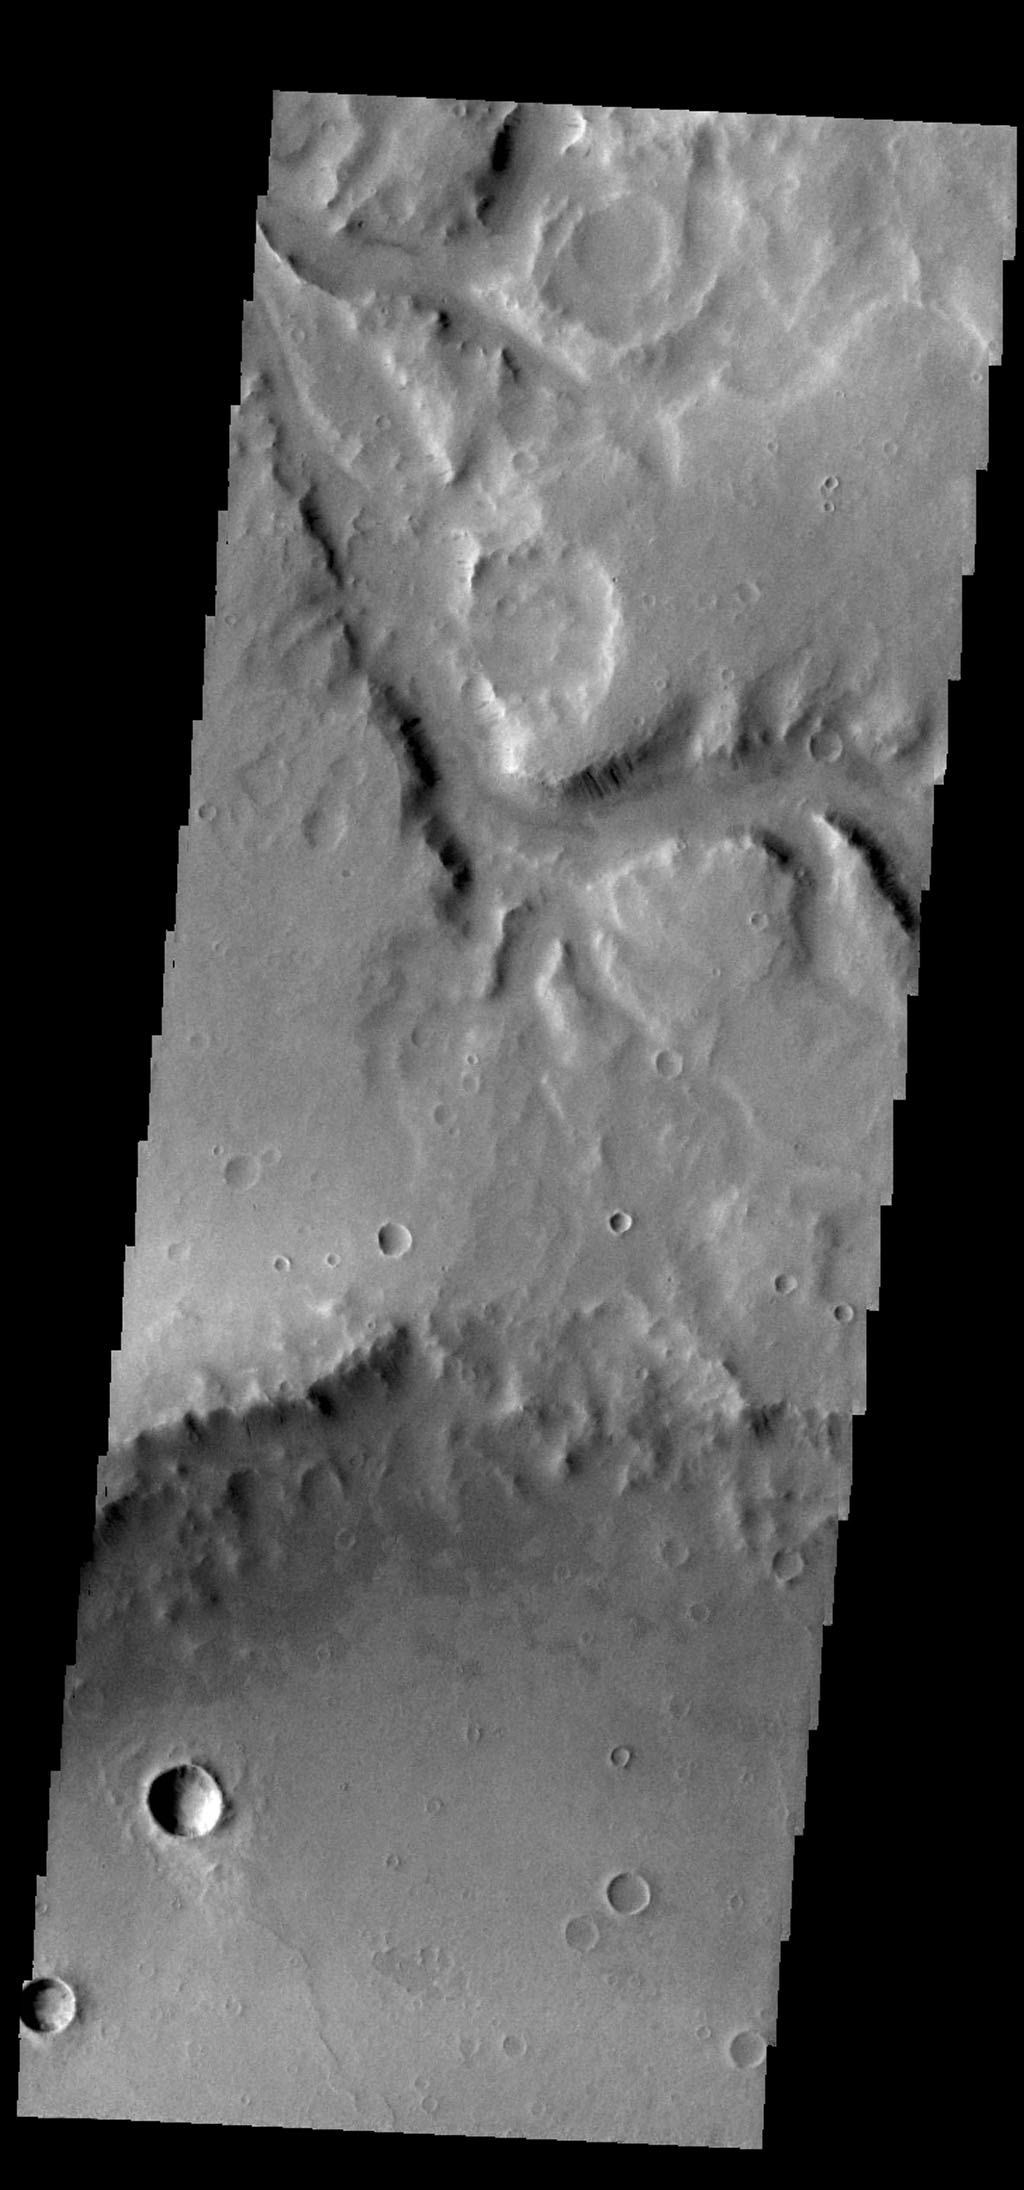 This image from NASA's 2001 Mars Odyssey spacecraft shows a small section of Naktong Vallis.